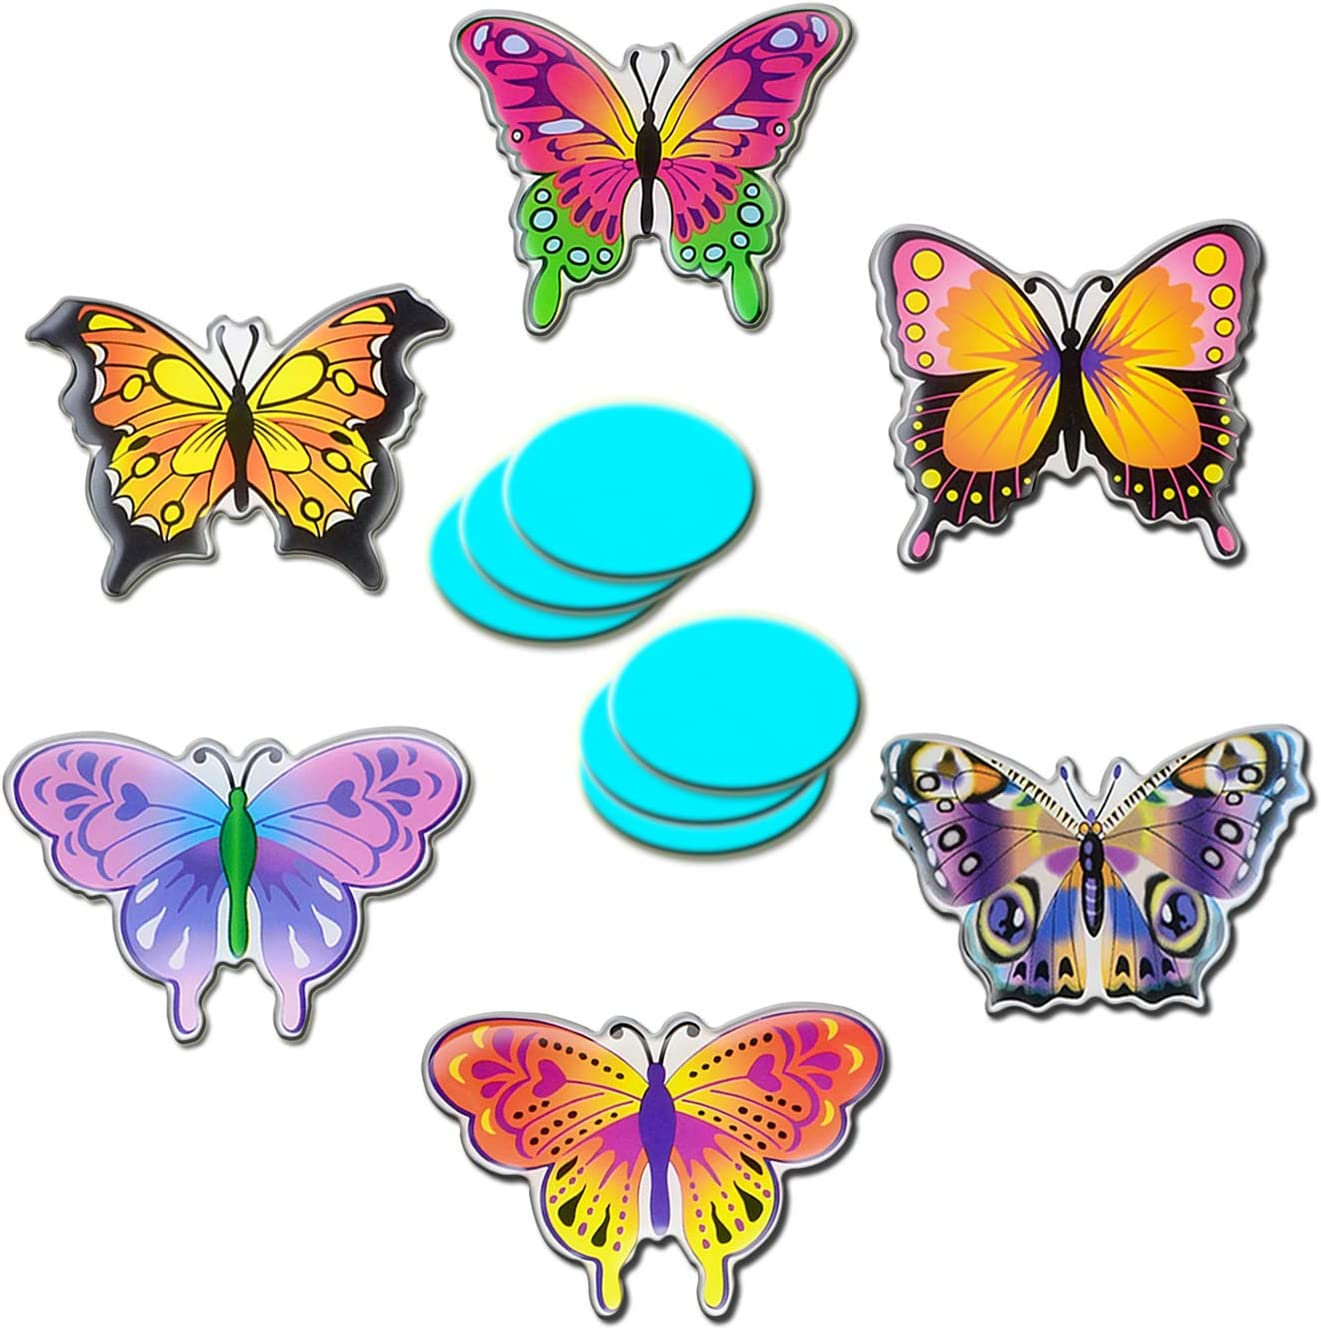 Colorful Butterfly Refrigerator Magnets Cute Fridge Magnets 6 Pcs Decoration Menu Living Room Window Kitchen Classroom Office Screen Locker for Adults Kids Boys and Girls with 6 Pcs Iron Sheet